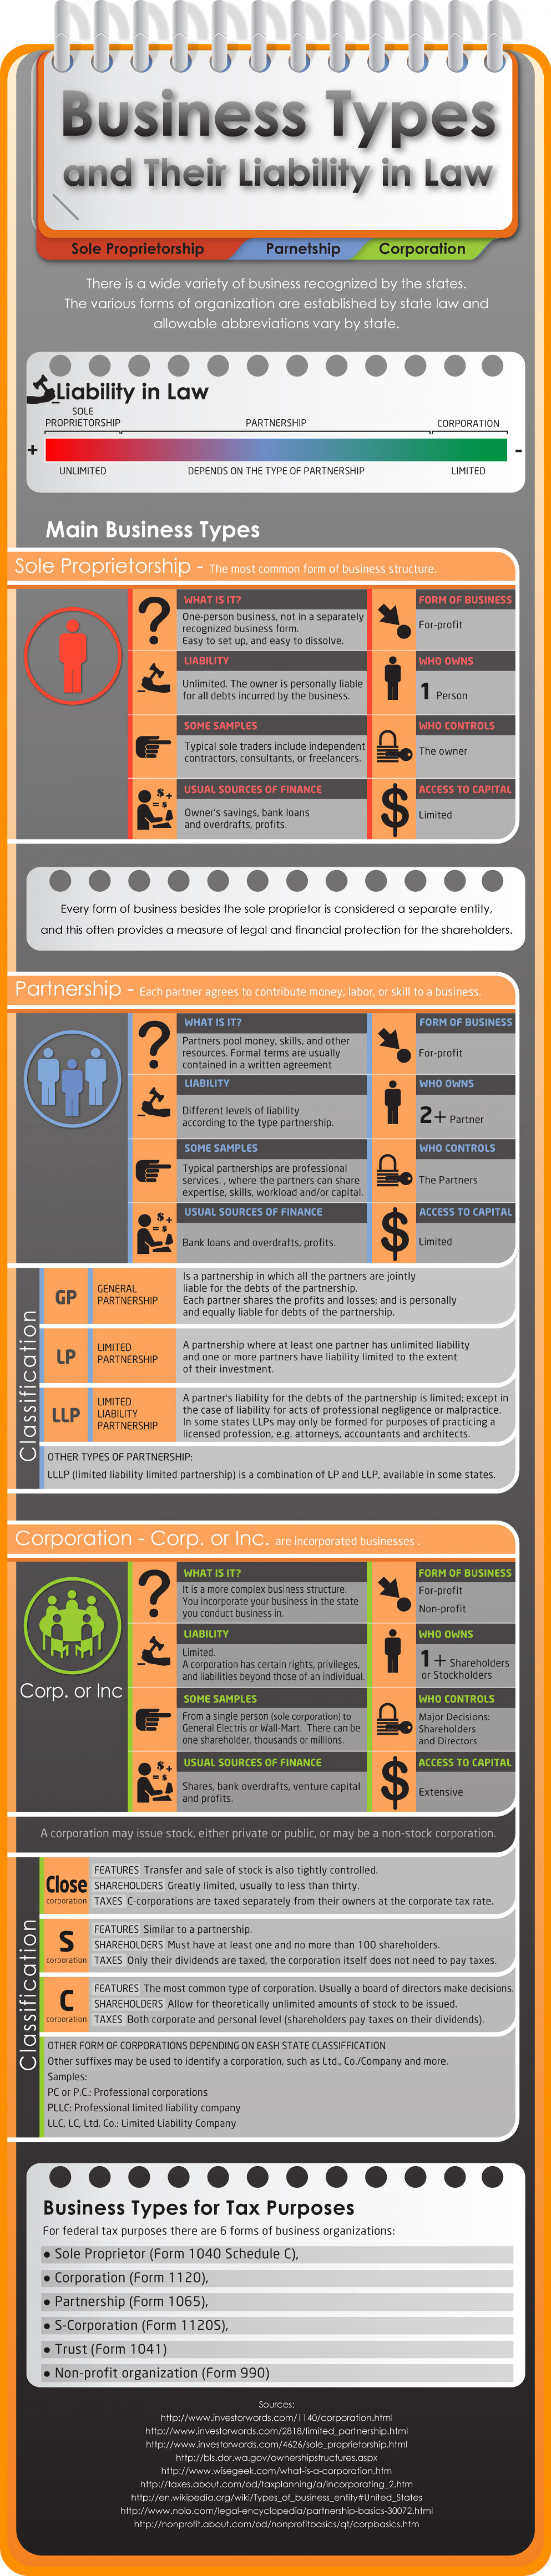 Business & Liability in Law Infographic